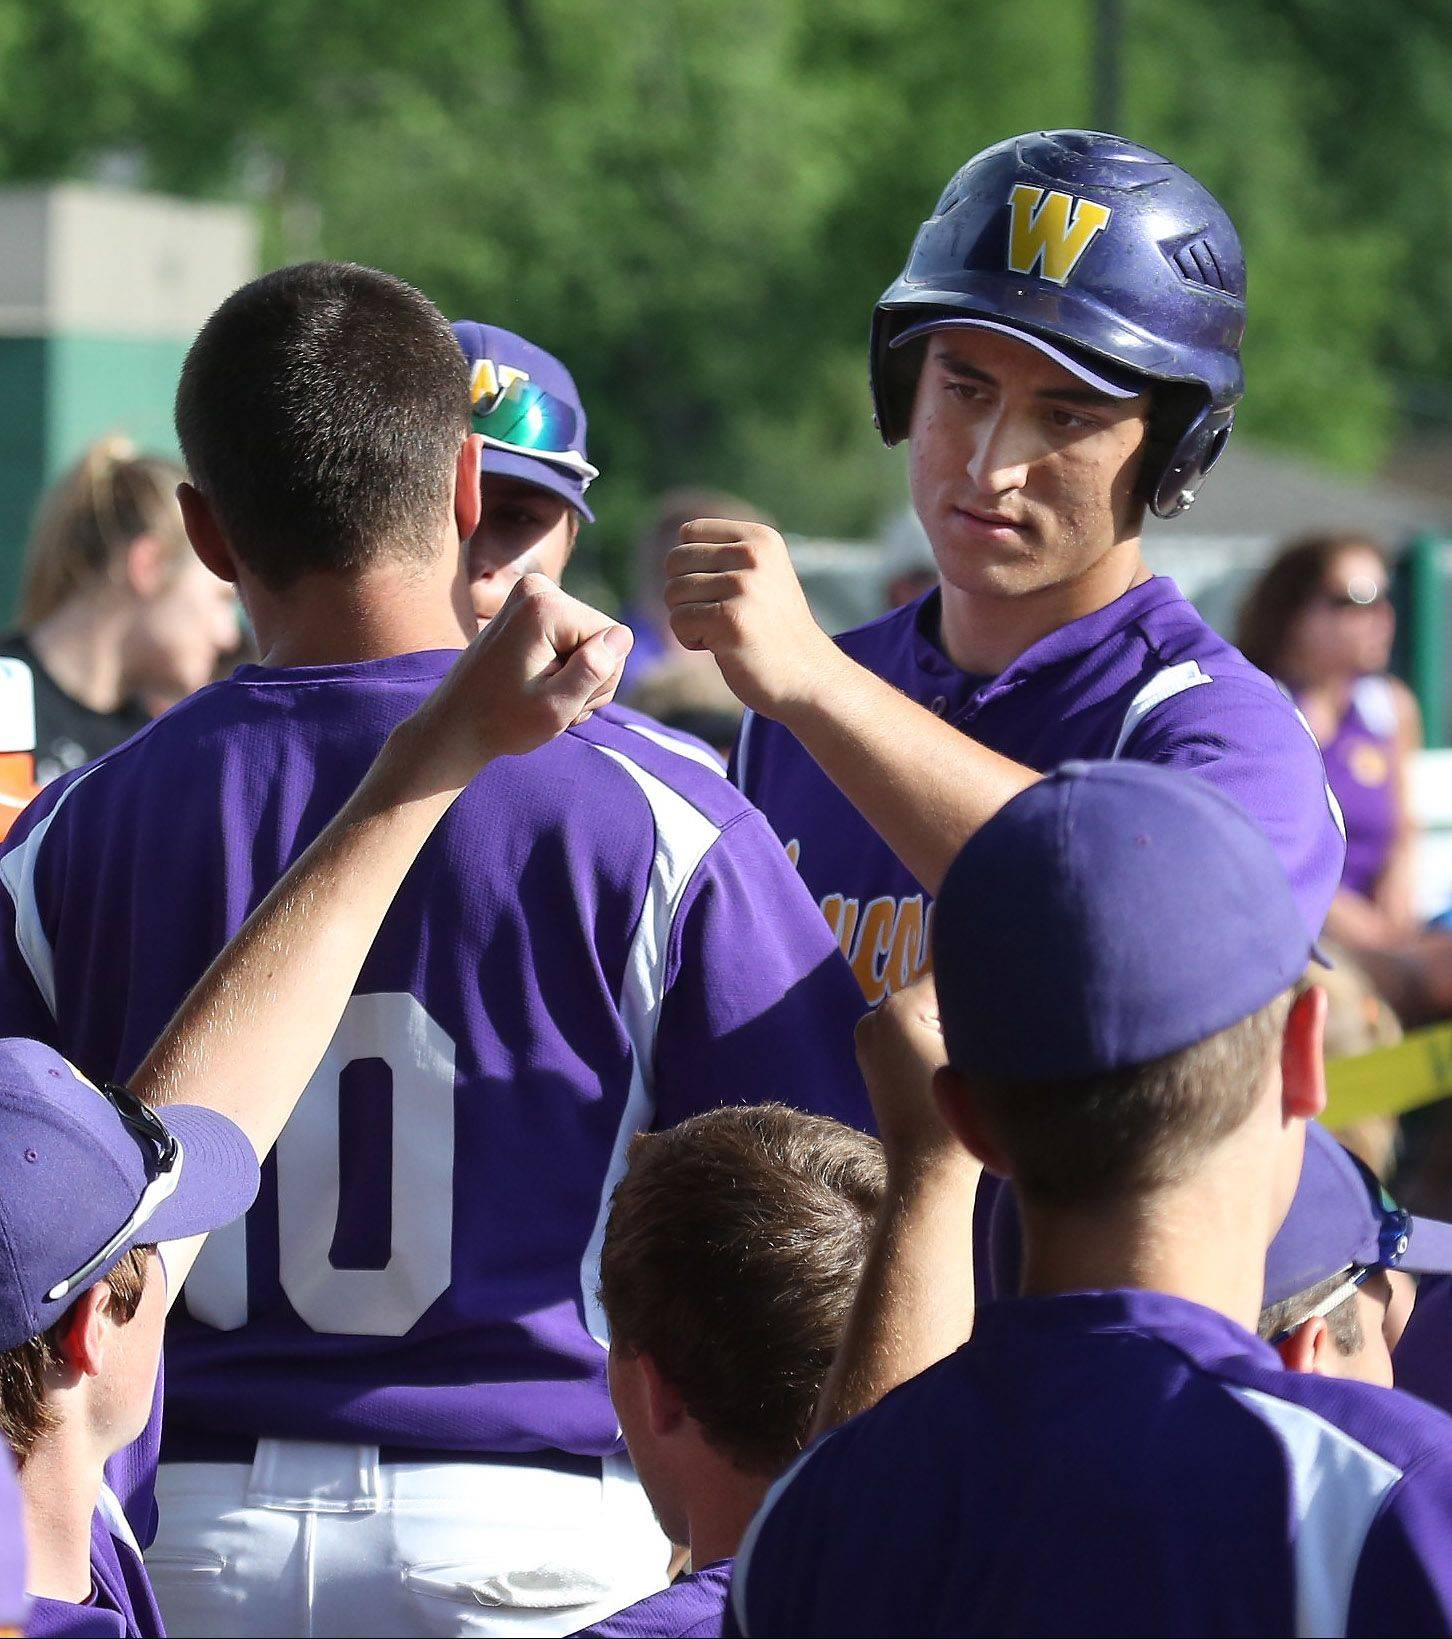 Wauconda's Joe Lovelle is congratulated by teammates after scoring the first run in Class 3A sectional semifinal play Thursday against Richmond-Burton at Grayslake Central. Wauconda won 9-1.